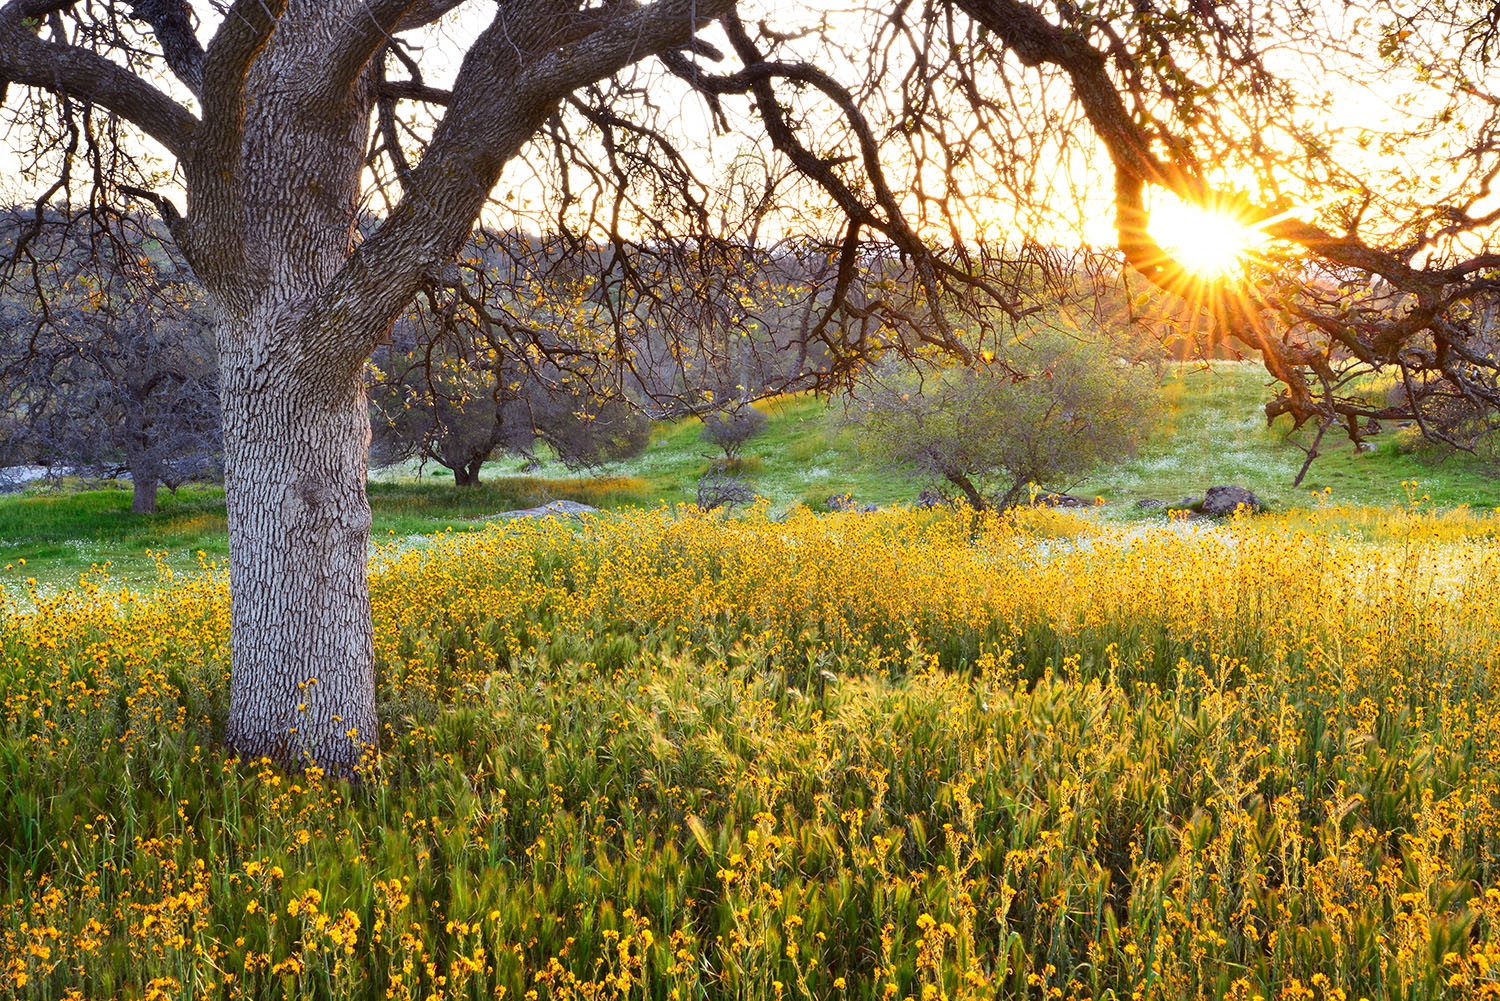 A morning sunburst with an oak tree and golden flowers.